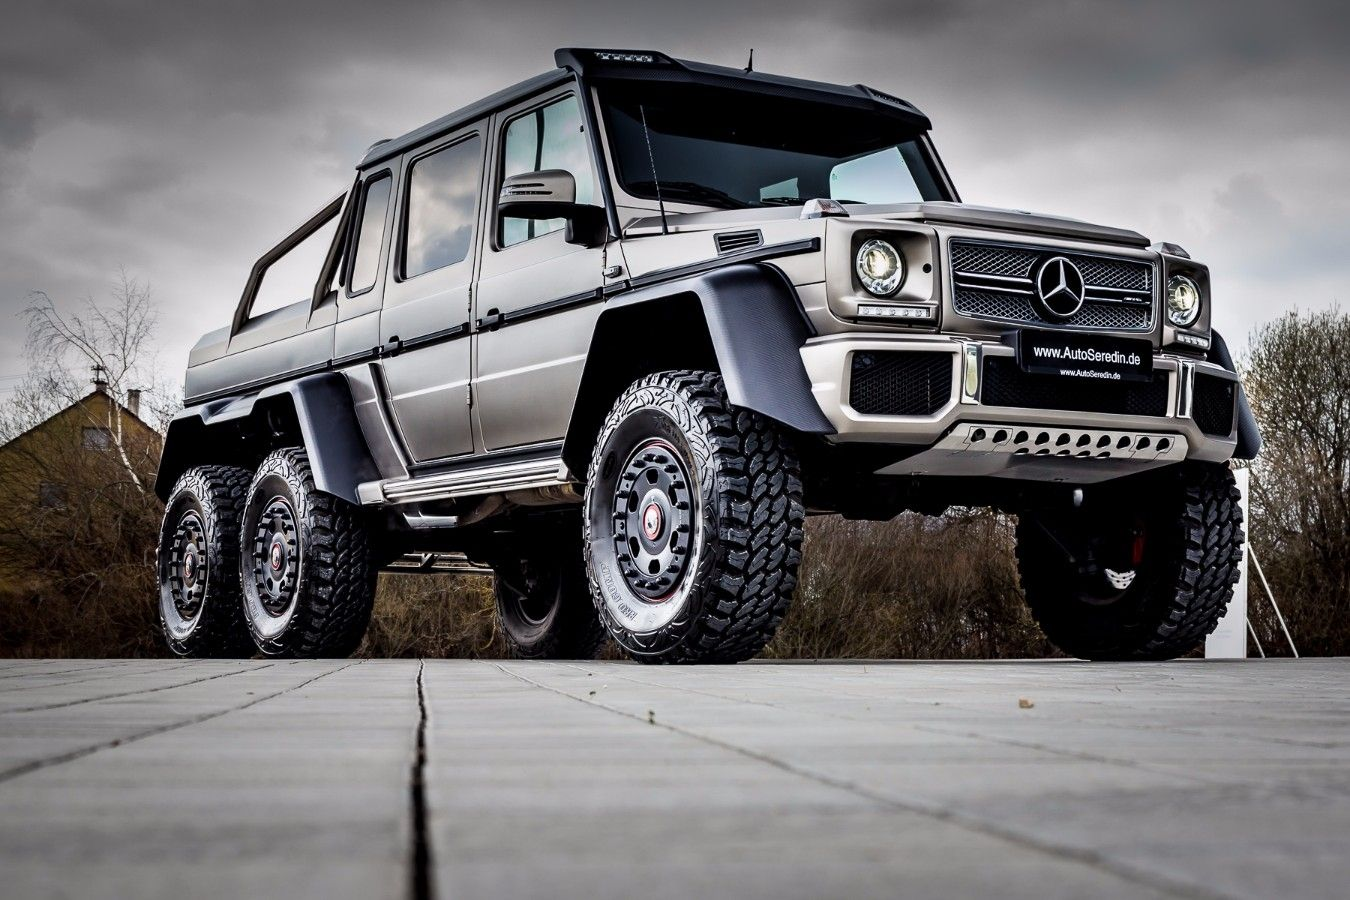 Mercedes Benz G 63 Amg 6x6 Exclusiv On Stock One Of Last Cars Export Price 844 900 Stosk L681 Fuel Consumptio Mercedes Benz Benz G Dubai Cars